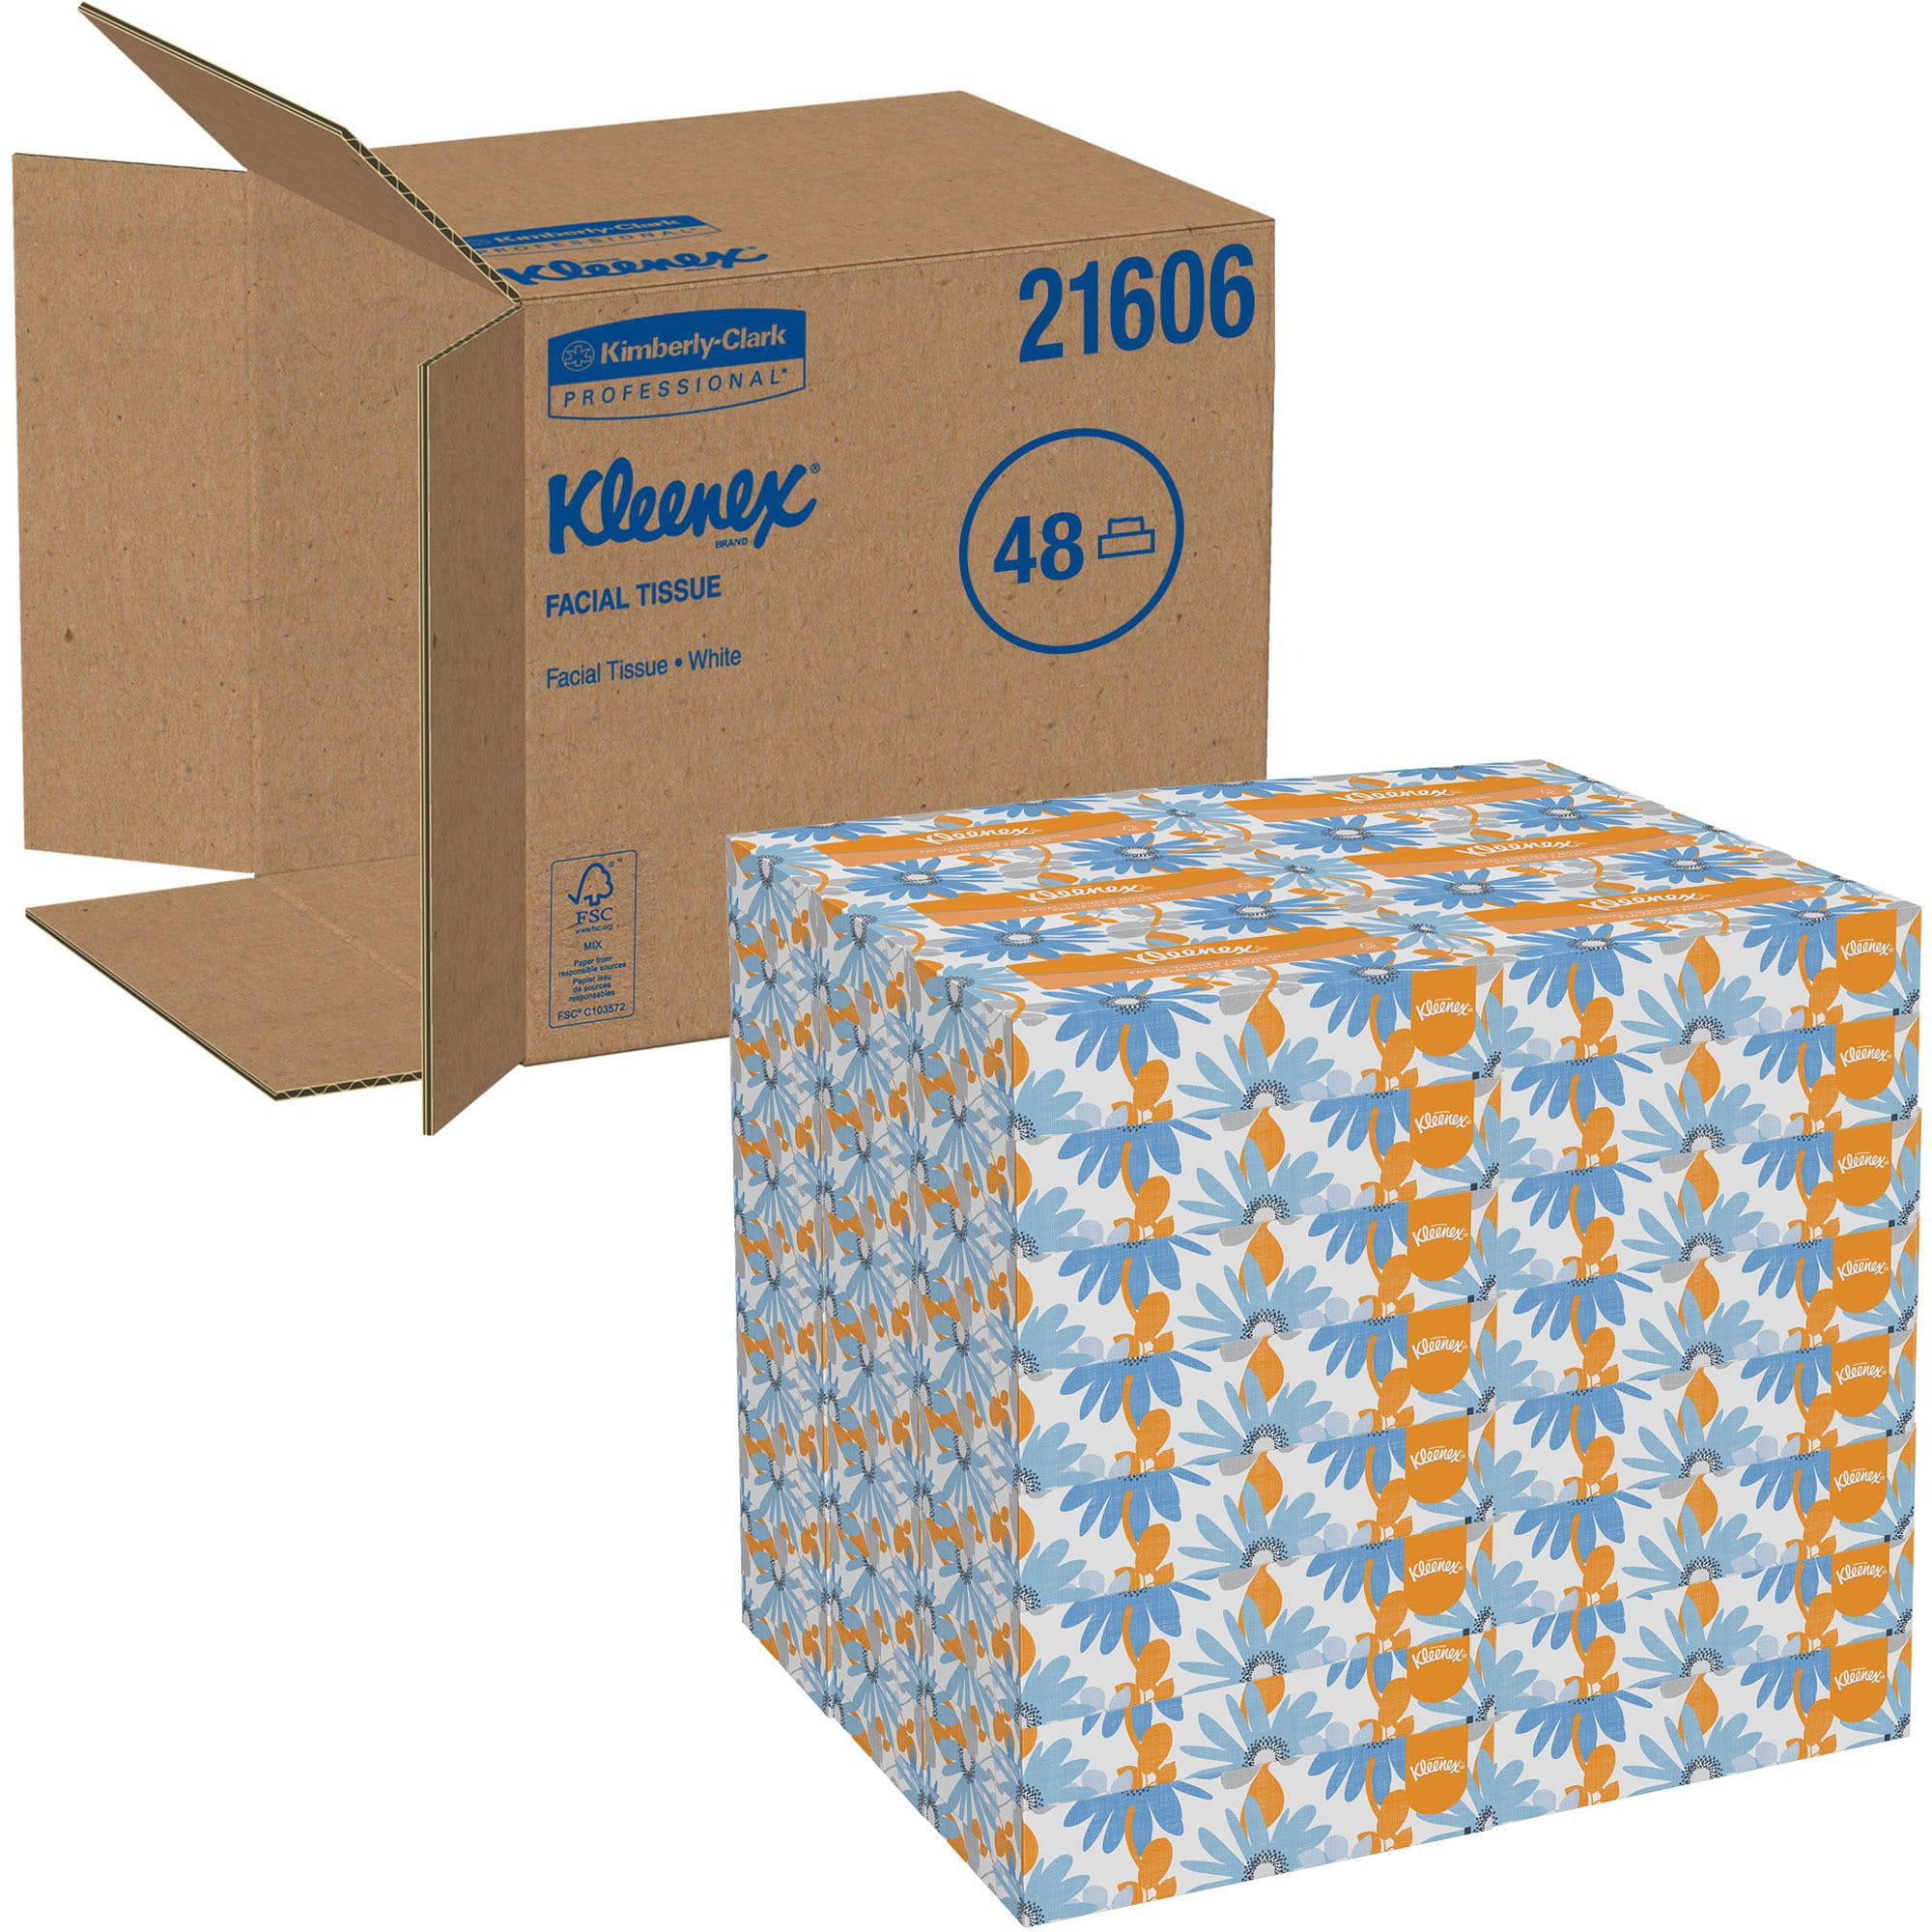 48 Boxes Kleenex Professional Facial Tissue for Business (125 tissues each box) $58 + Free shipping